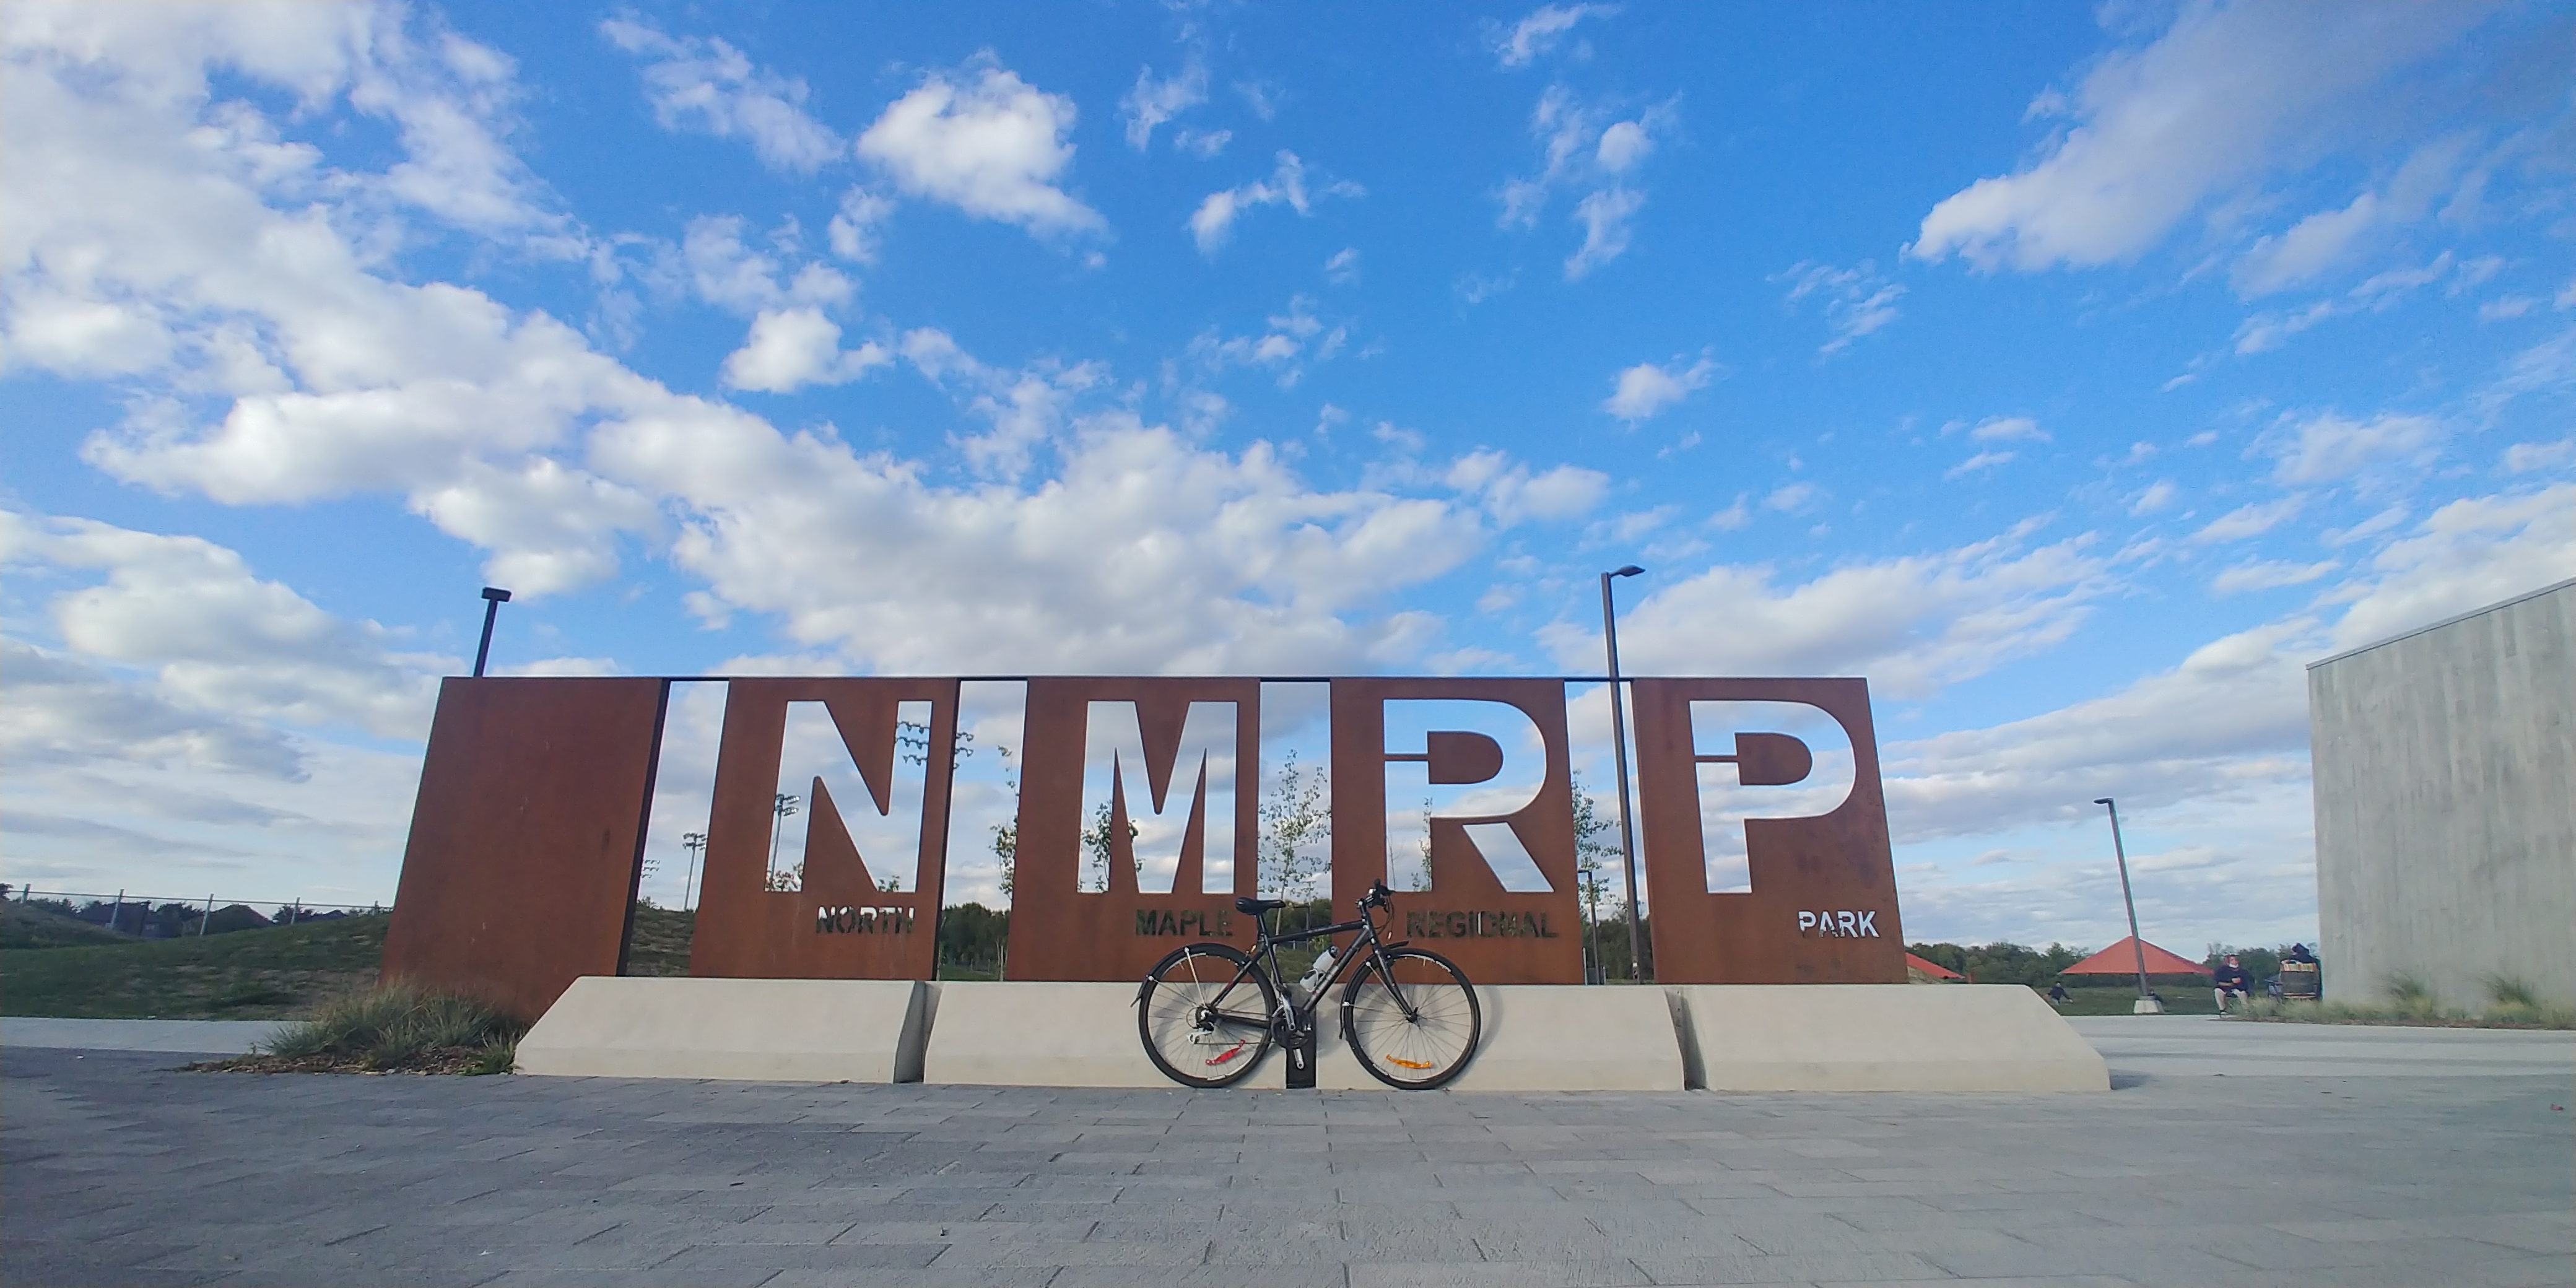 Bicycle in front of North Maple Reserve Park sign